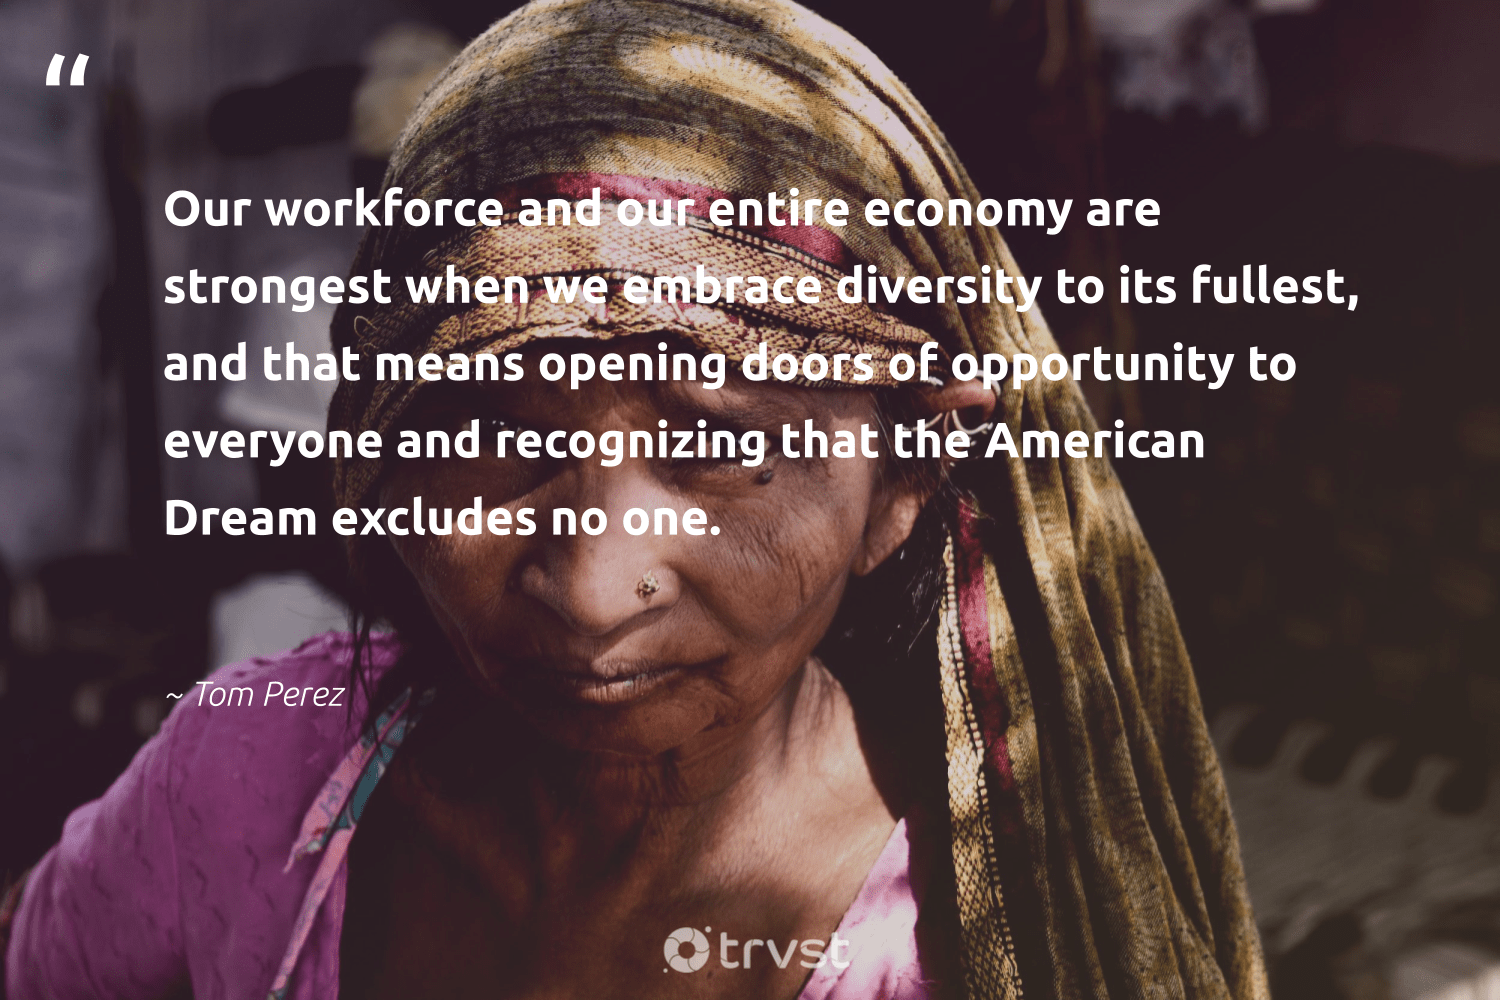 """Our workforce and our entire economy are strongest when we embrace diversity to its fullest, and that means opening doors of opportunity to everyone and recognizing that the American Dream excludes no one.""  - Tom Perez #trvst #quotes #diversity #representationmatters #inclusion #giveback #weareallone #impact #discrimination #makeadifference #socialchange #planetearthfirst"